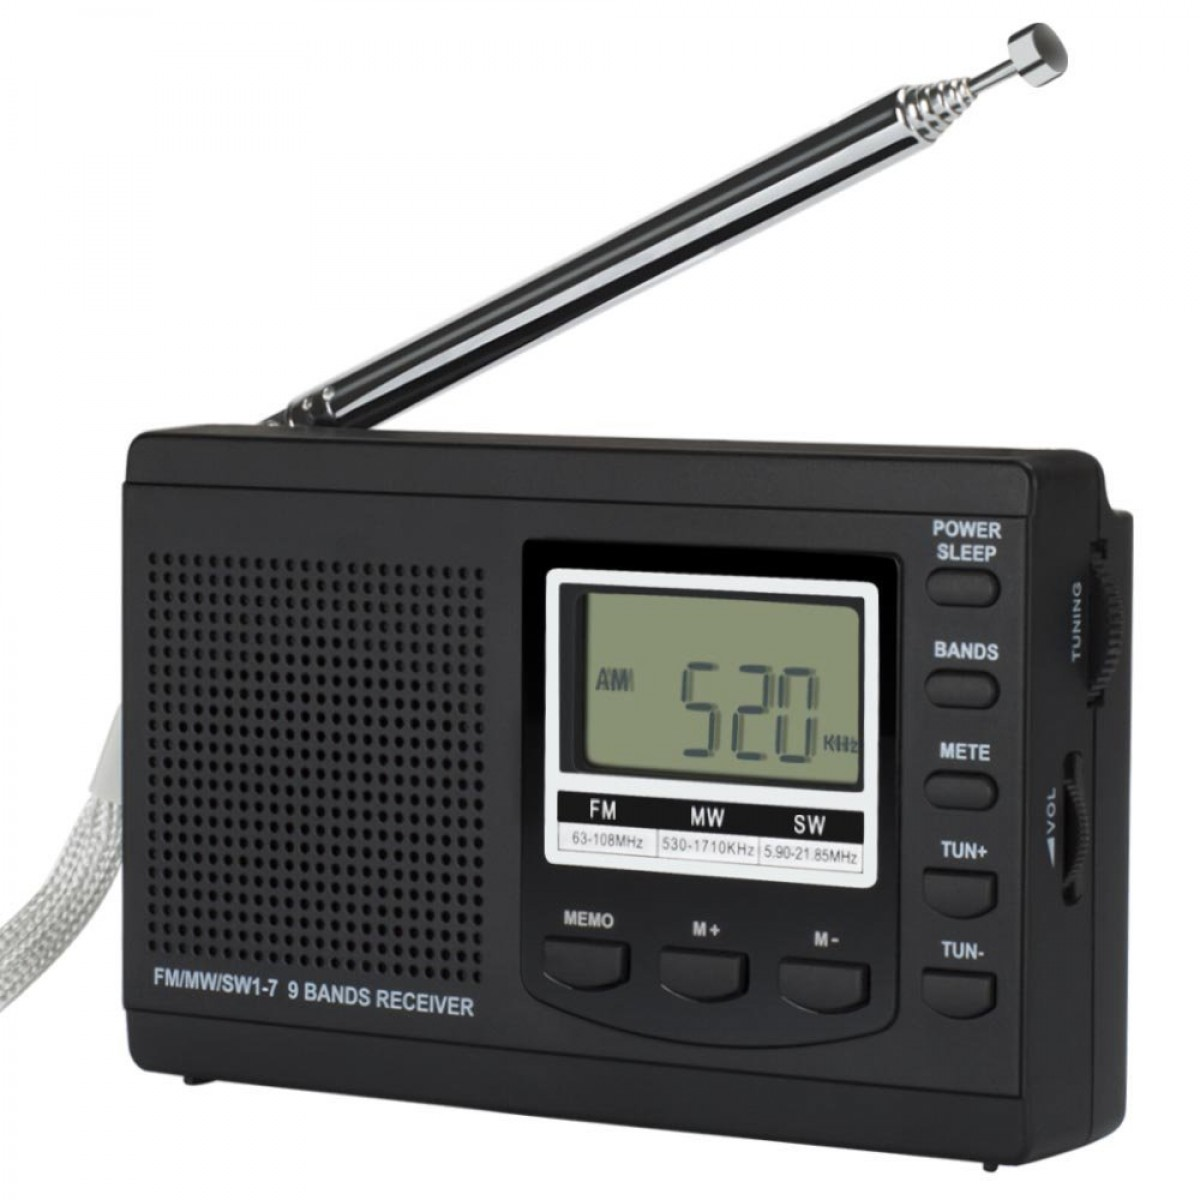 LCJ 310 Portable DSP Shortwave FM AM Clock and Alarm Multiband Radio Receiver Stereo(Black